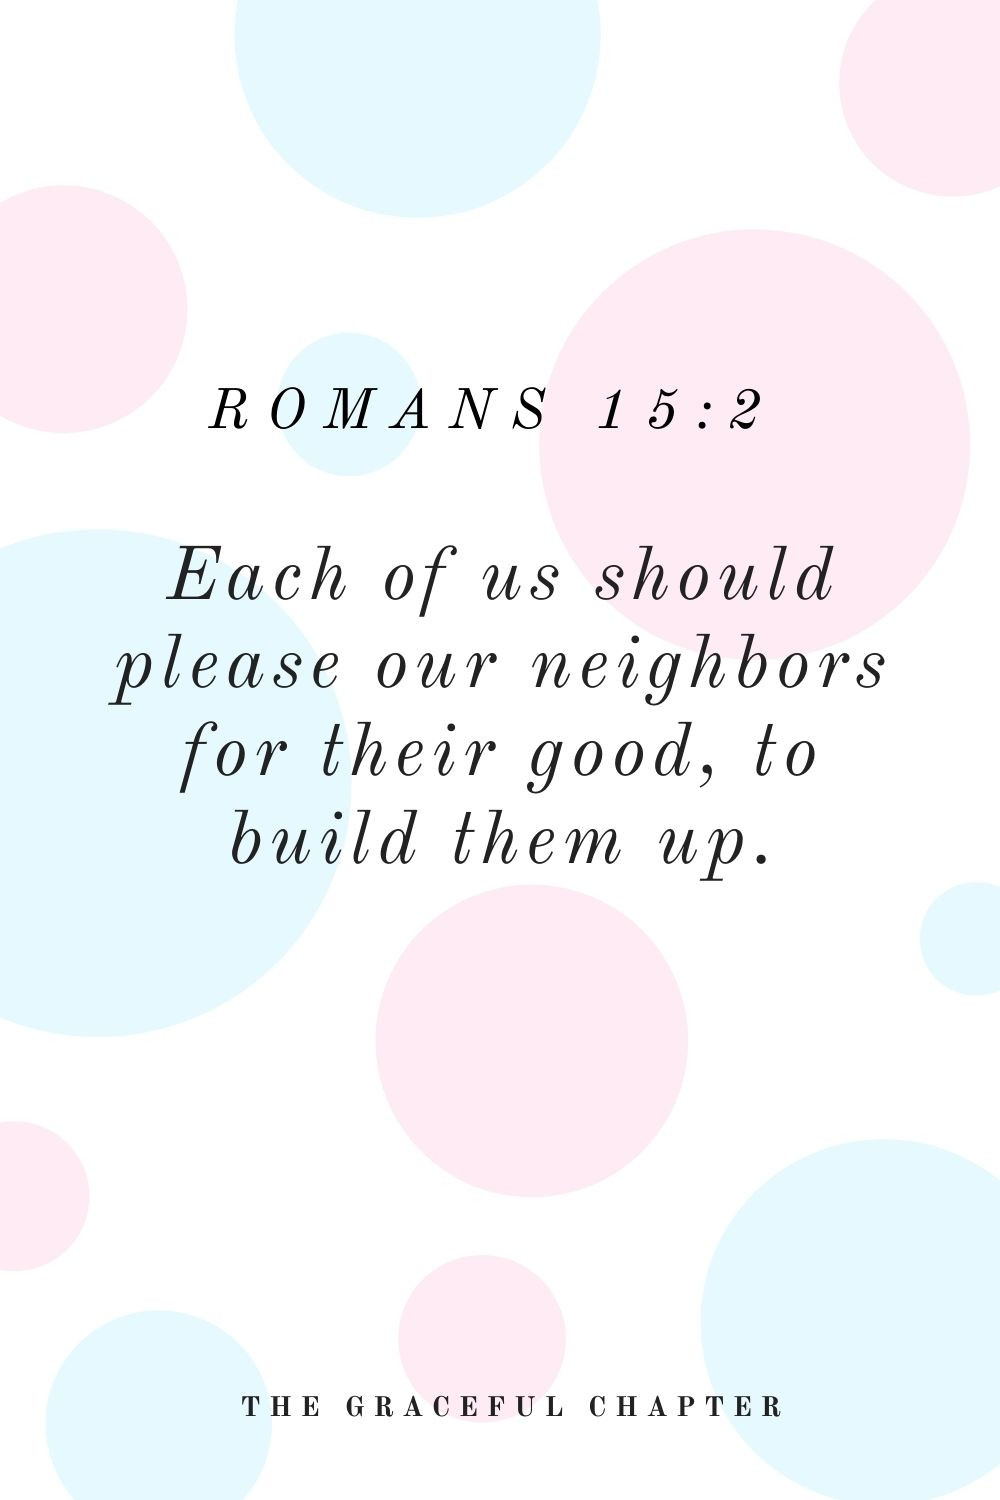 Each of us should please our neighbors for their good, to build them up. Romans 15:2